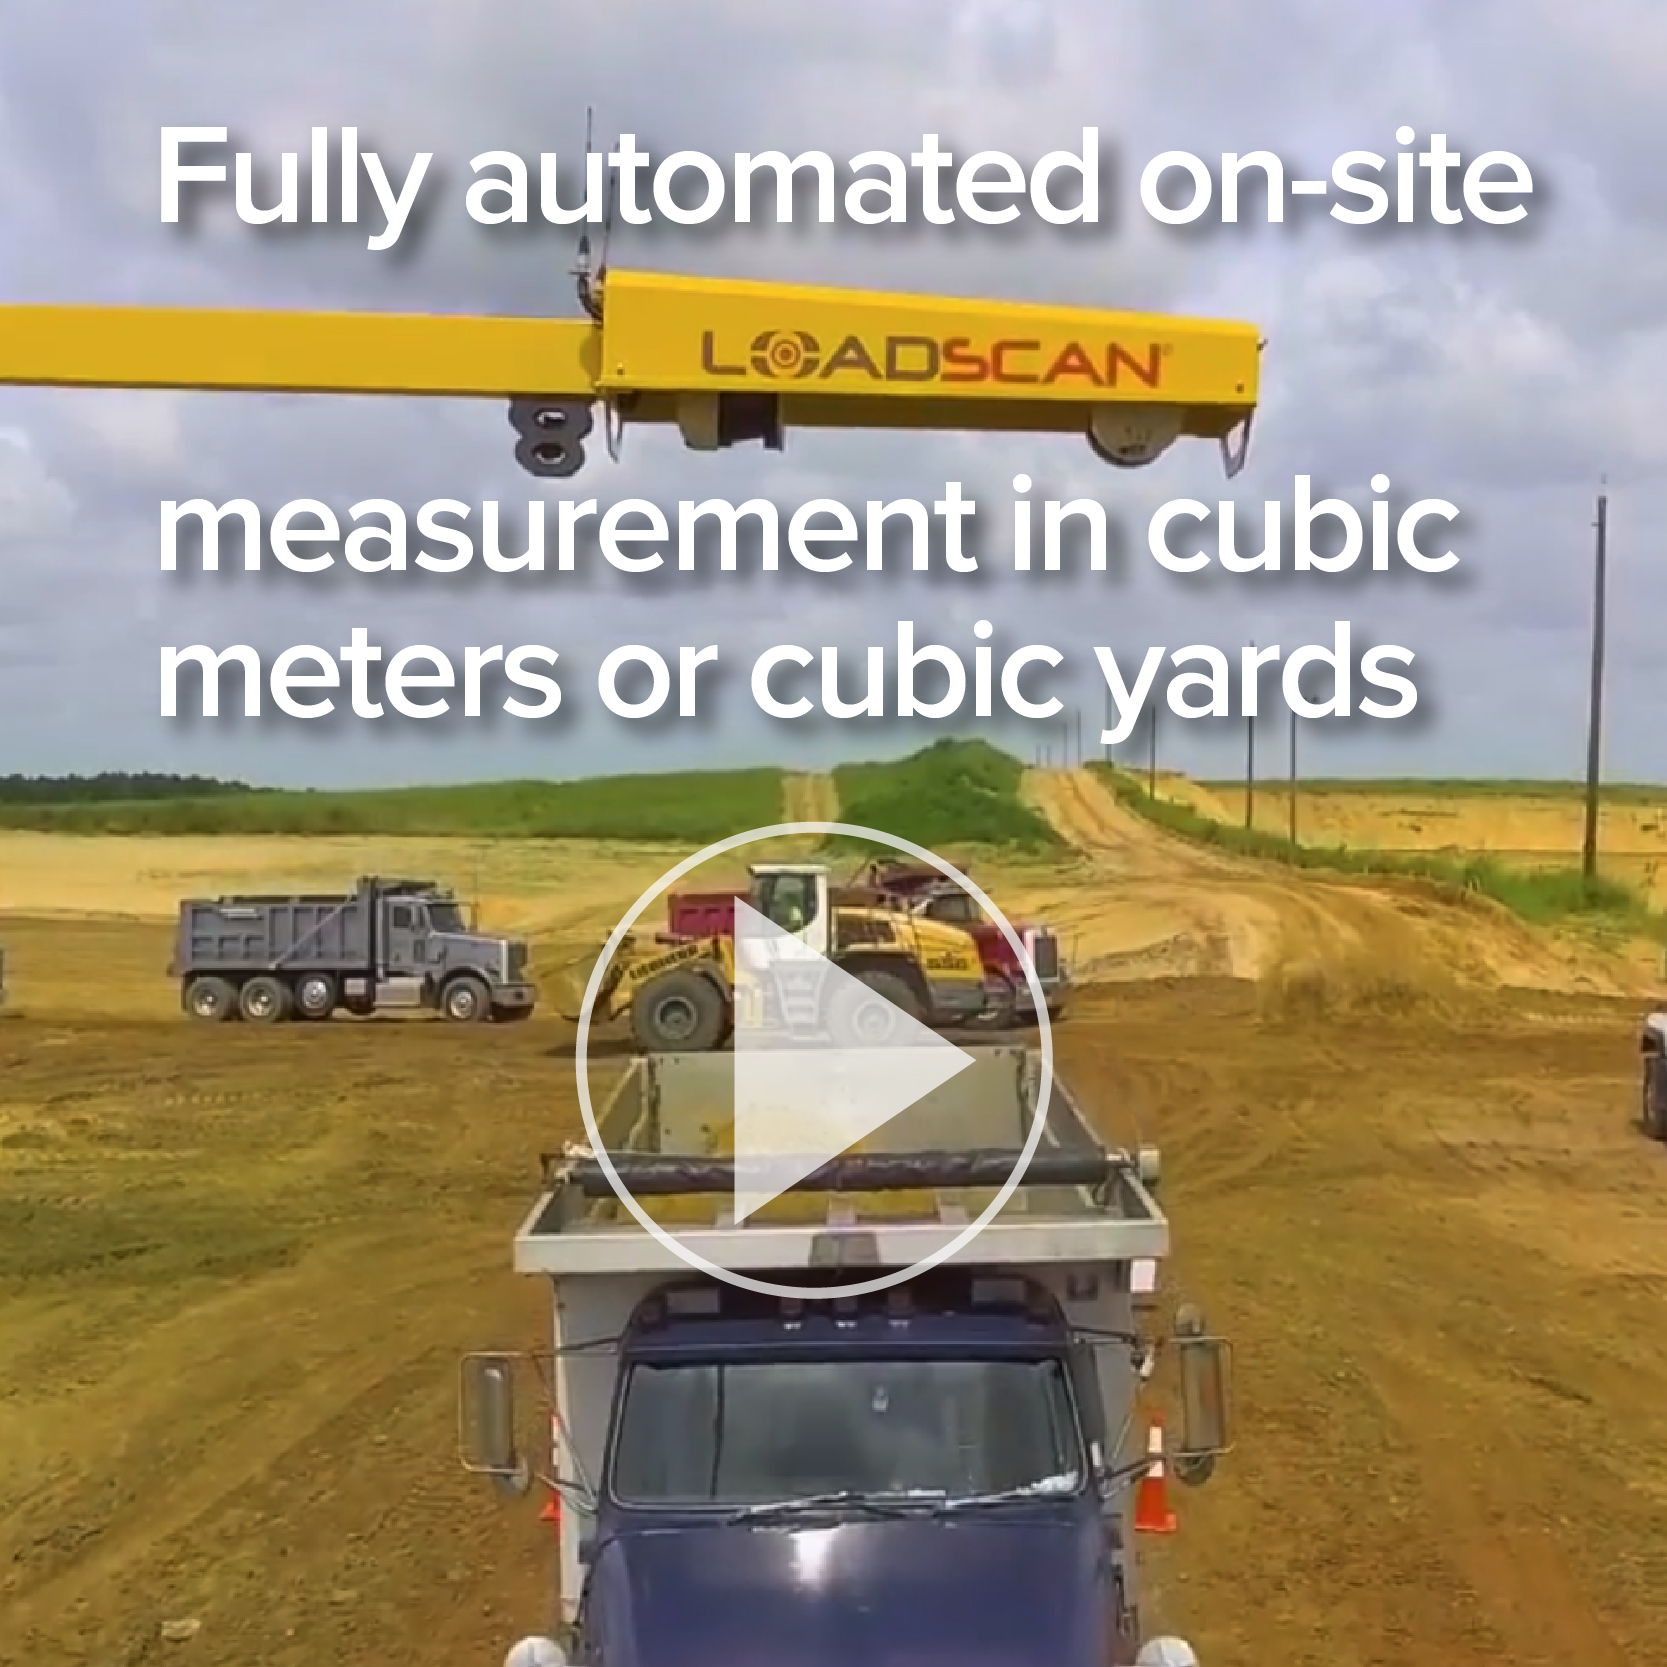 Fully automated on-site measurement in cubic meters or yards